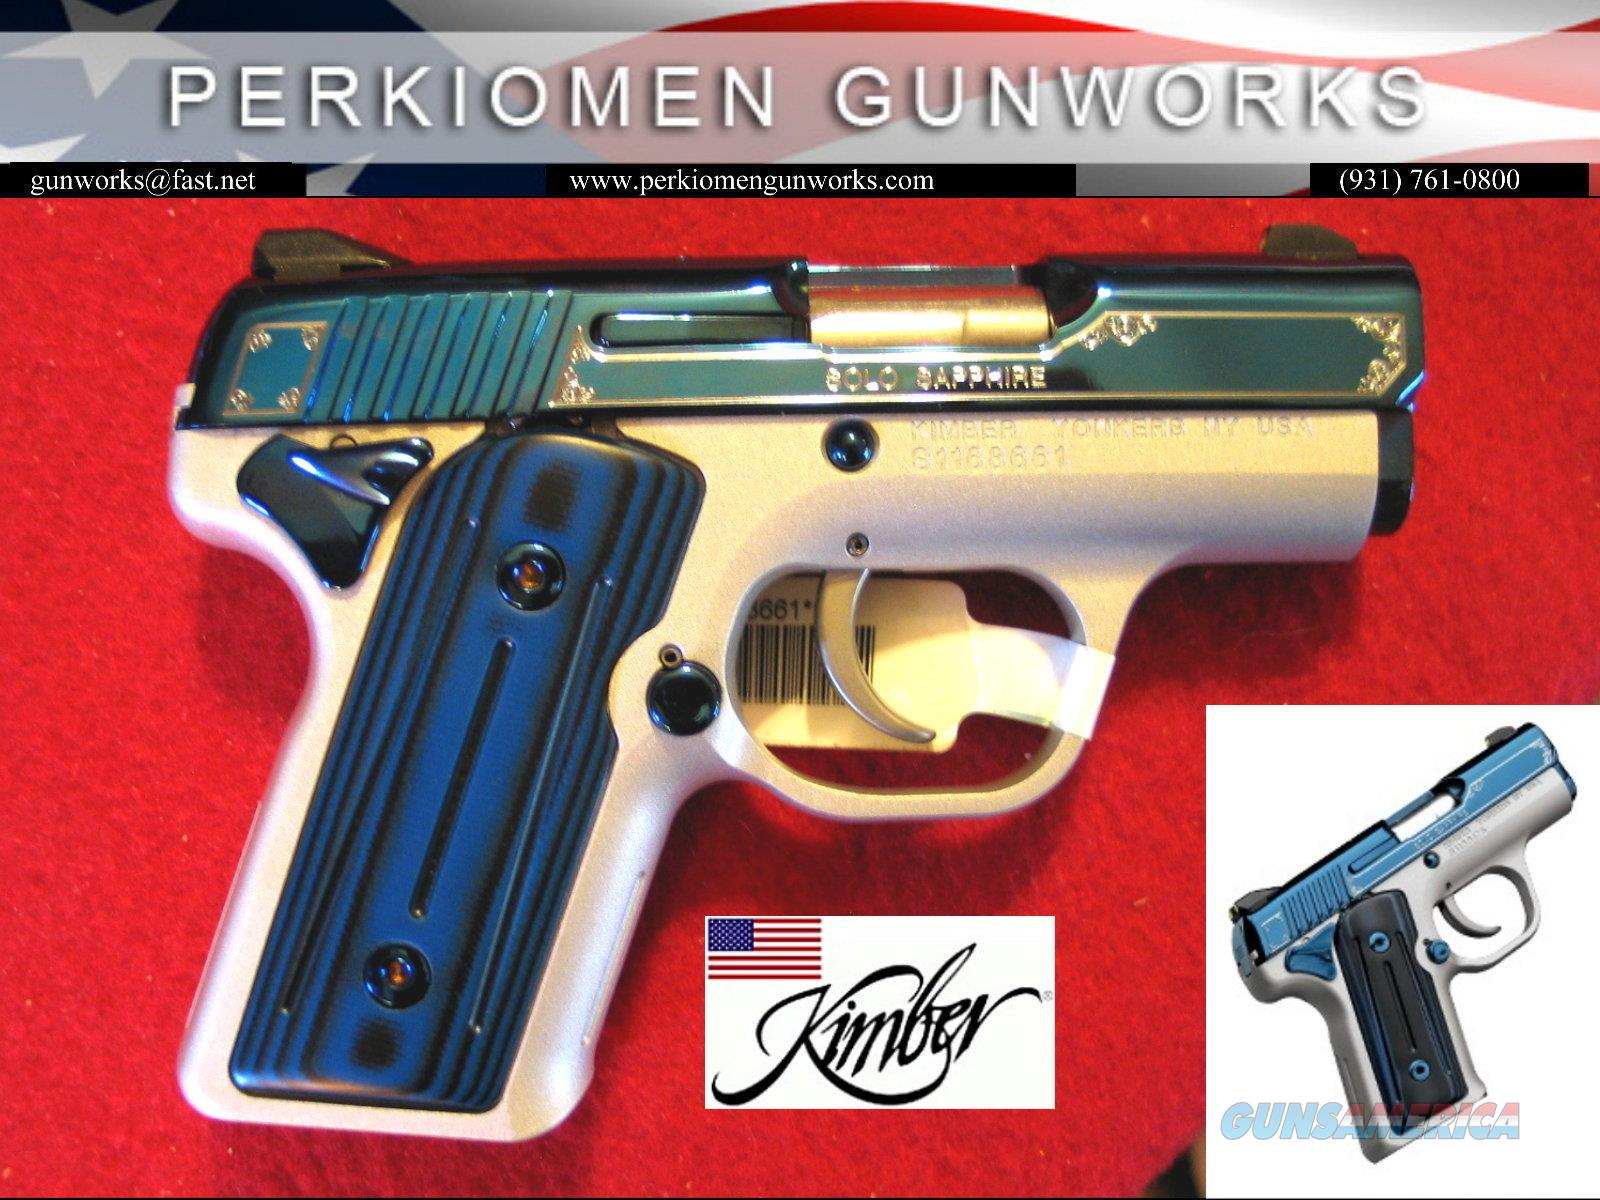 Solo Sapphire 9MM New in Box / ON SALE from $1169.00  Guns > Pistols > Kimber of America Pistols